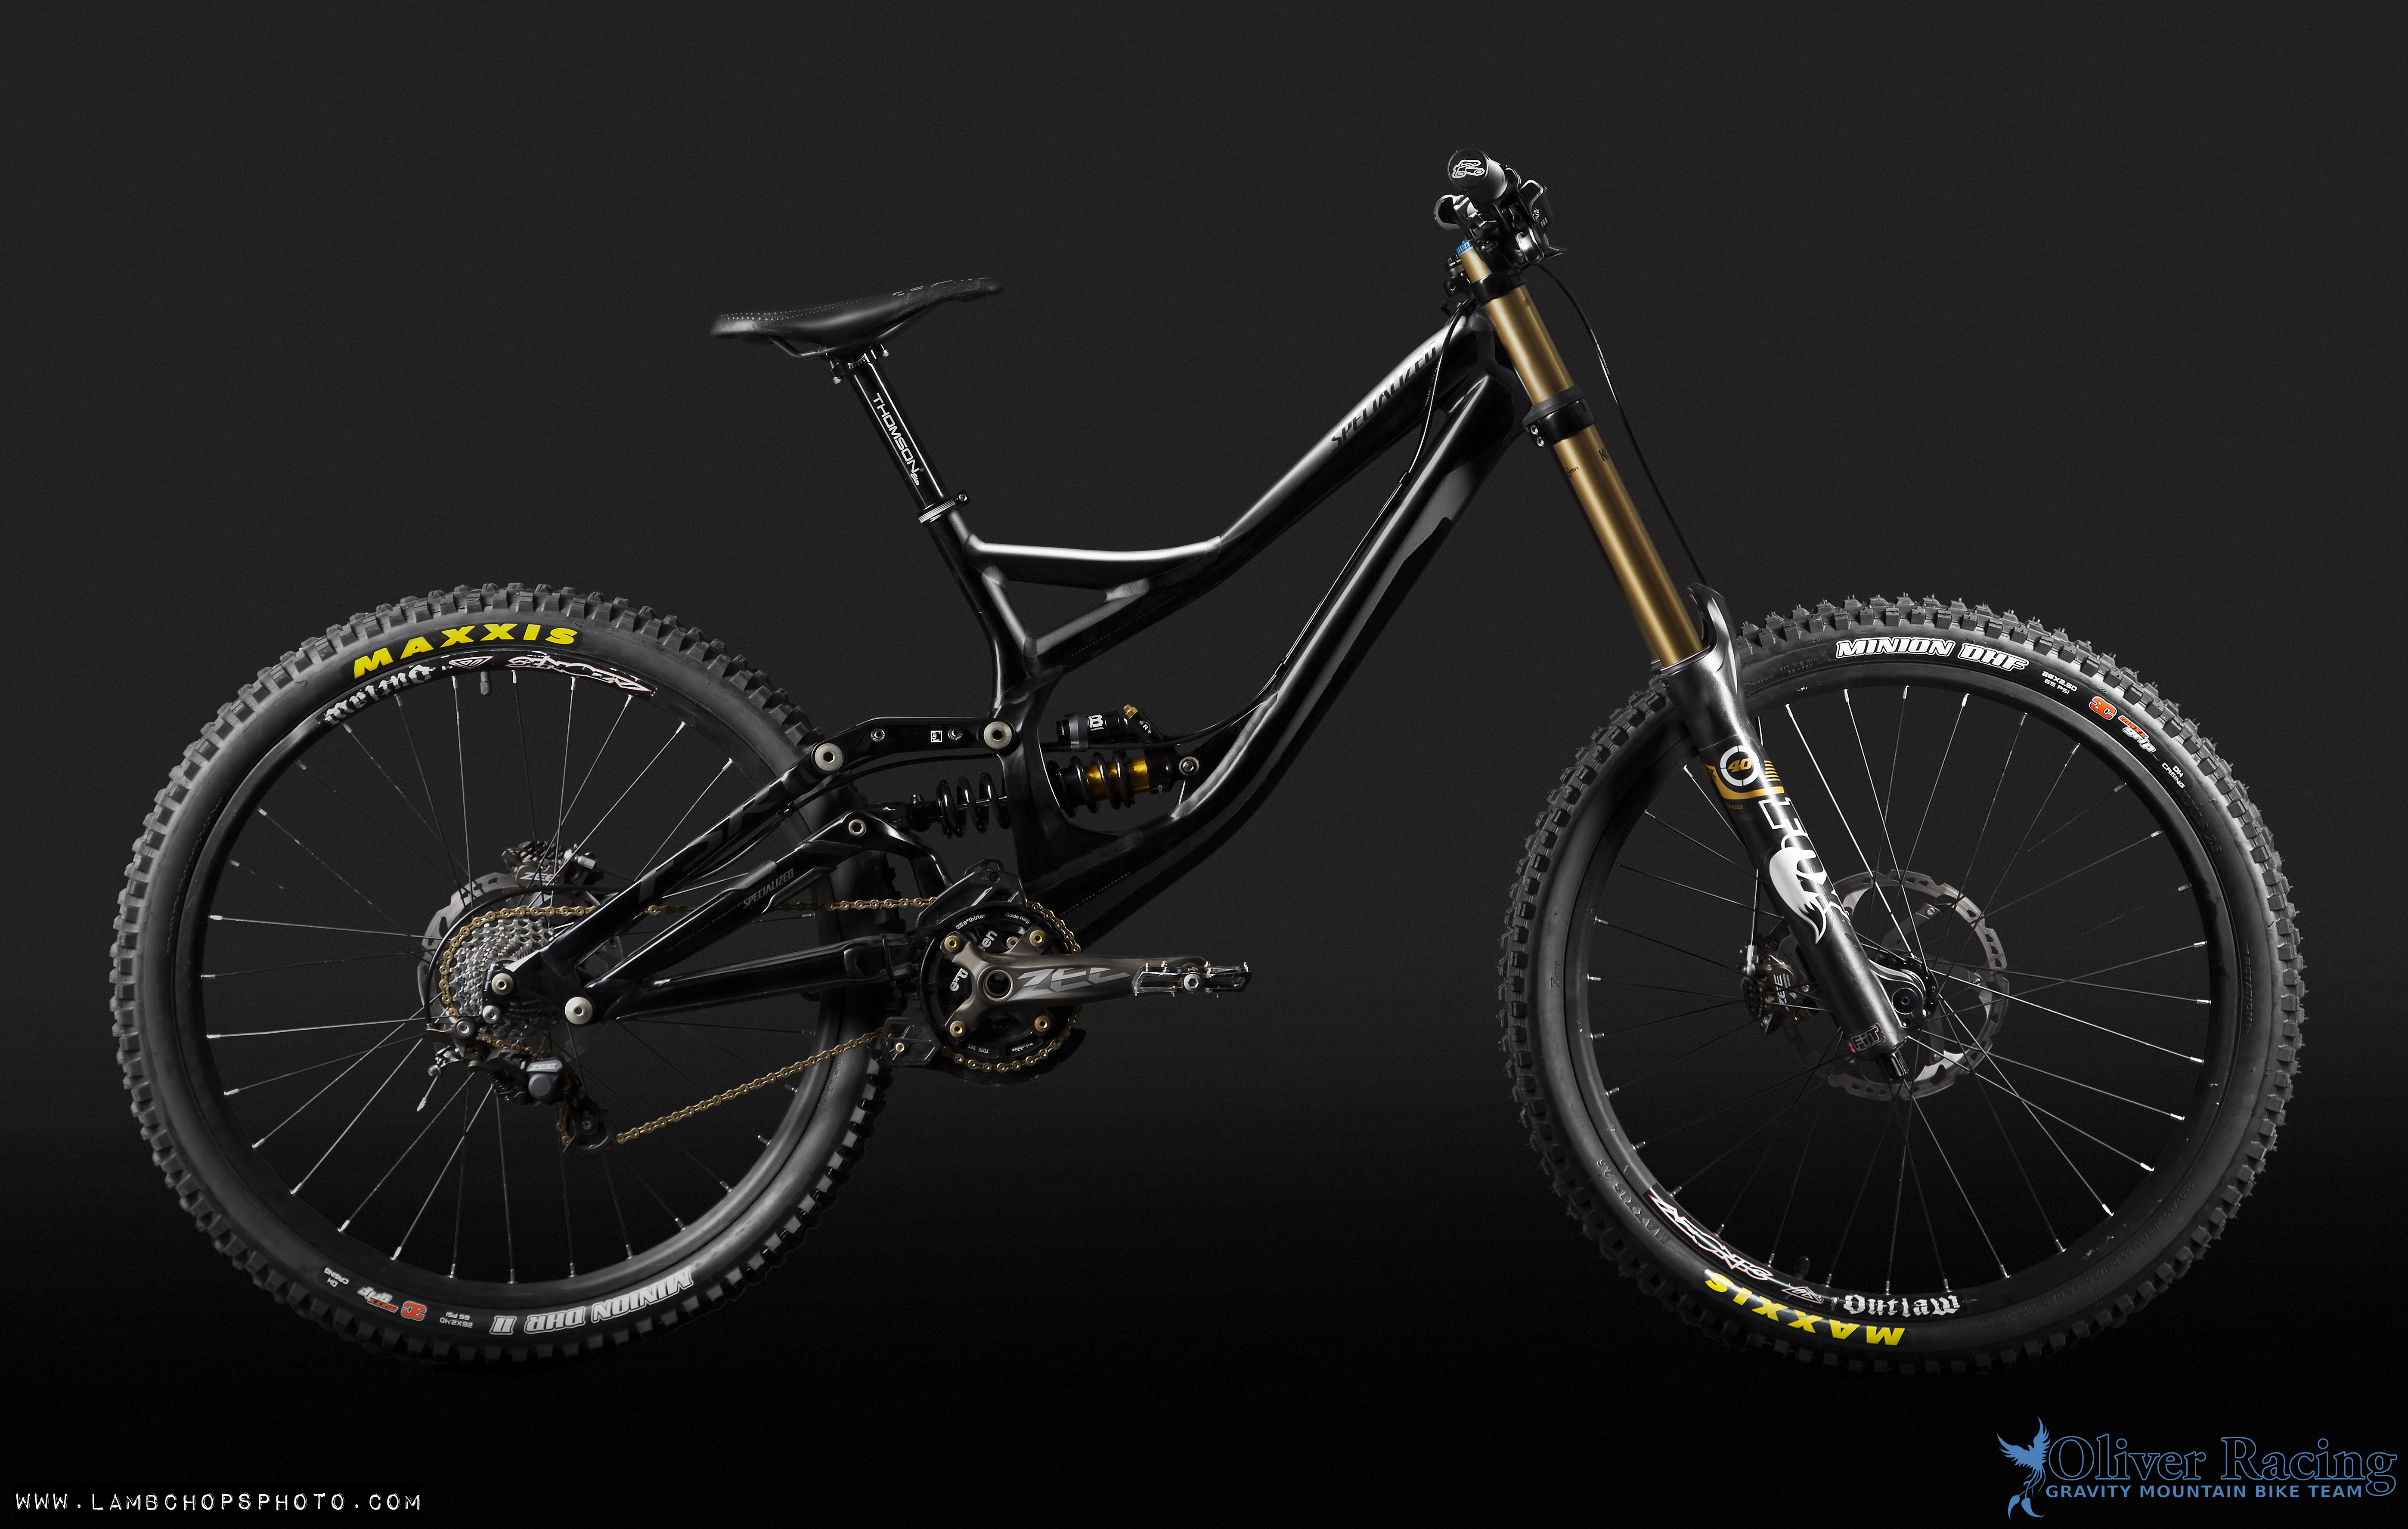 2013 Specialized Demo 8 - Oliver Racing Team Bike ...